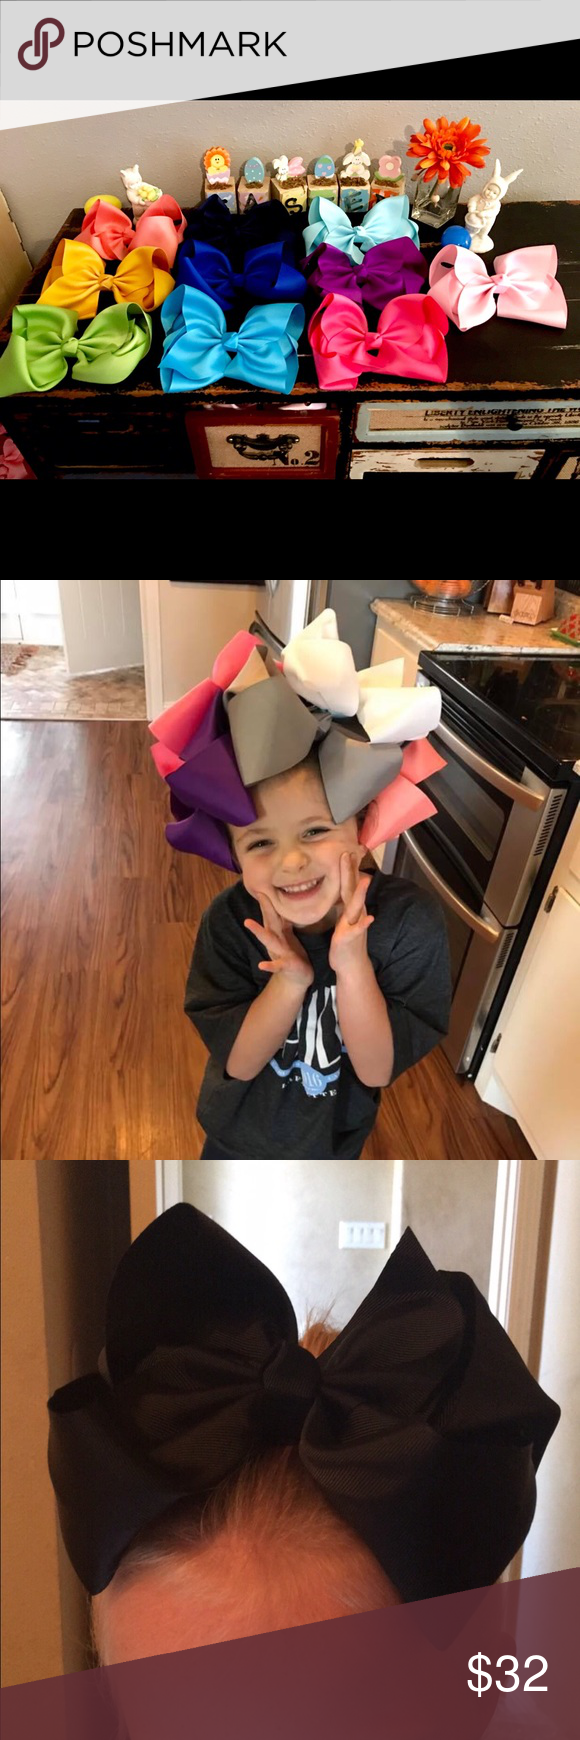 """Set Of 10 Big 8"""" Boutique Bows This 8"""" hair bow is the perfect size for any little girl. Collection comes with 10 different cheerful colors. Made with grosgrain ribbon and alligator hair clips. This would make a great gift. Accessories Hair Accessories"""